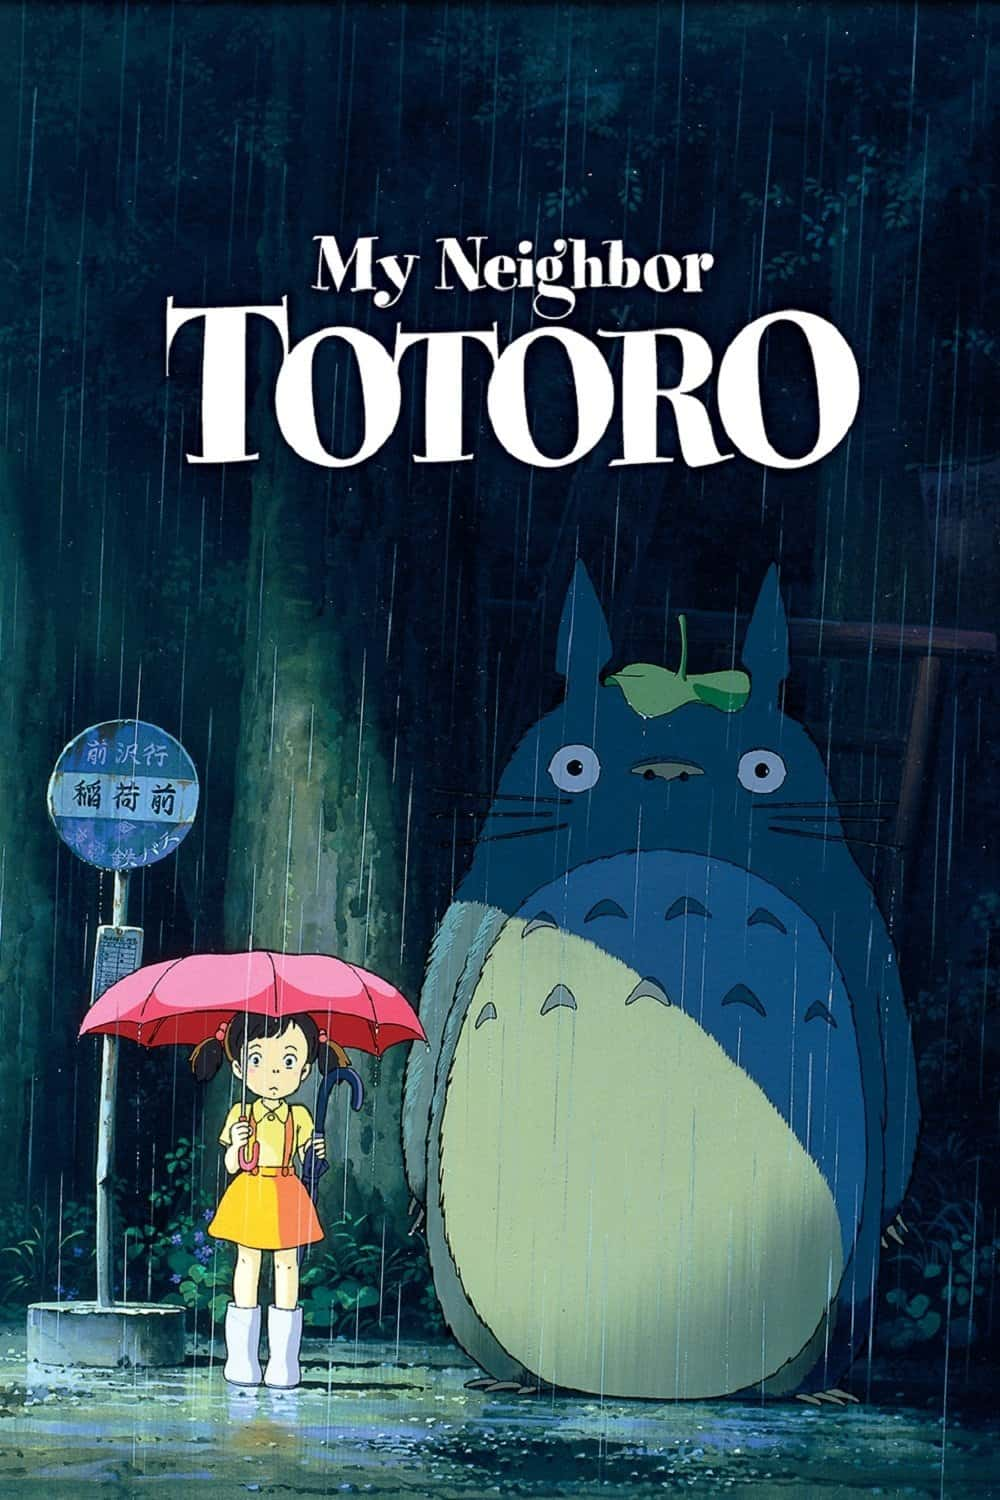 My Neighbor Totoro, 1988